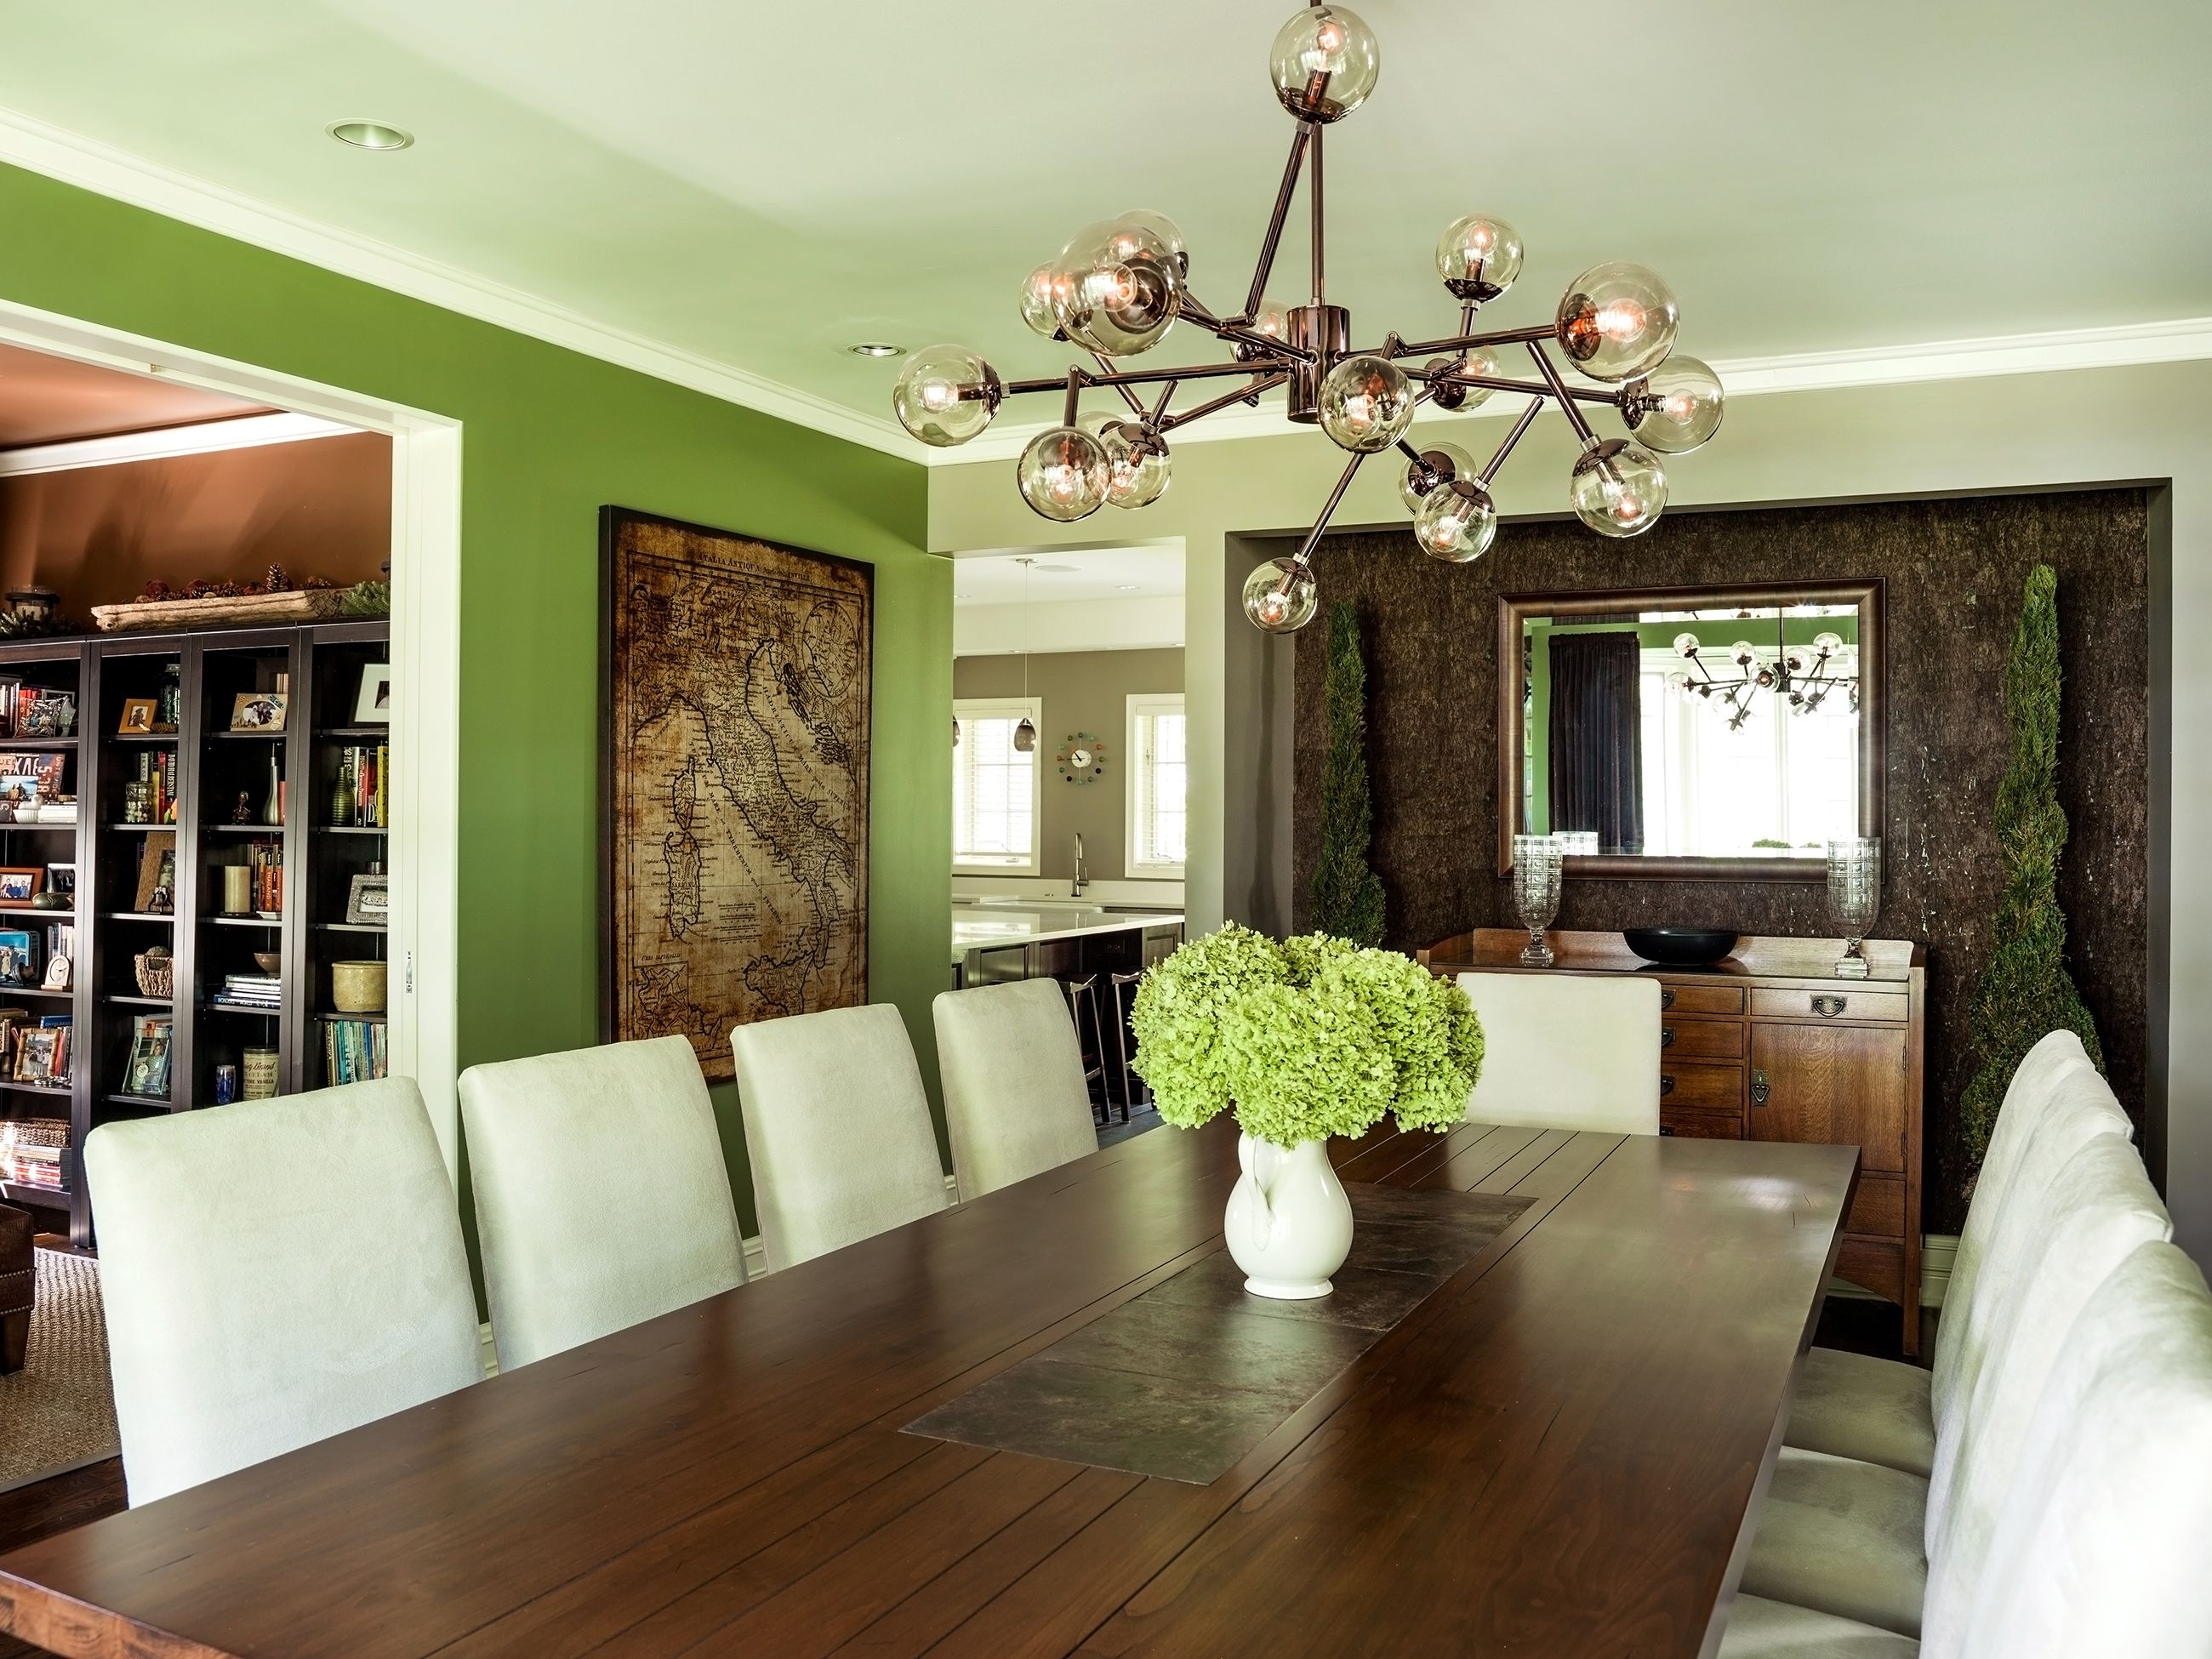 2021 Paint Color Trends, Trending Paint Colors For Dining Rooms